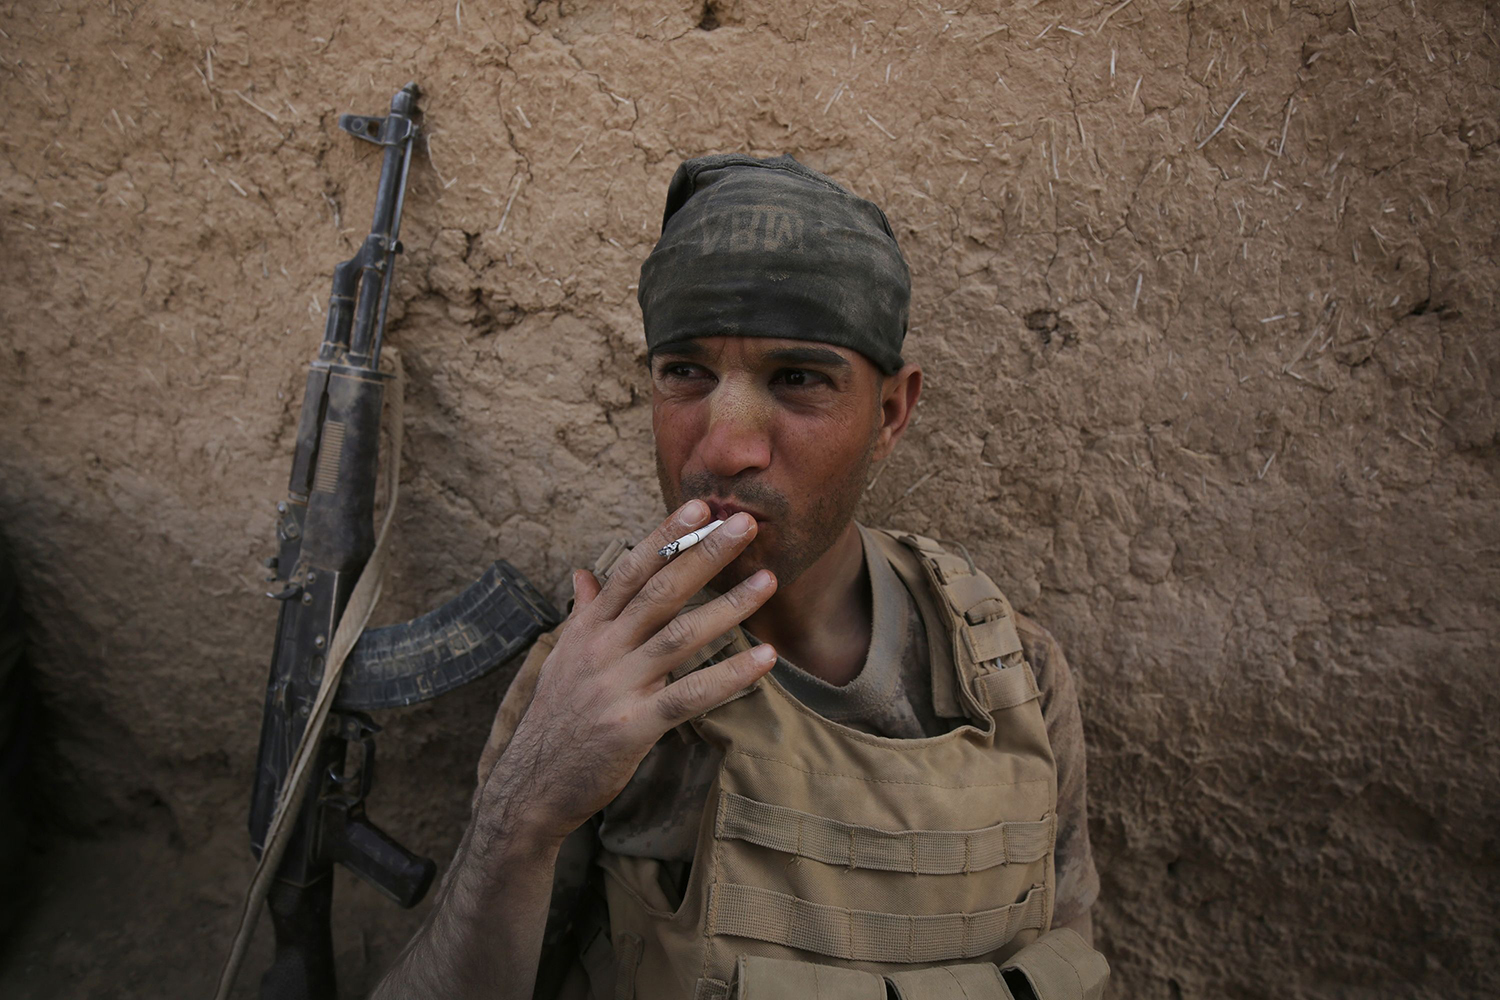 TOPSHOT - A member of the Iraqi government forces smokes a cigarette as they rest in the village of al-Khuwayn, south of Mosul, after recapturing it from Islamic State (IS) group jihadists on October 23, 2016, in part of an ongoing operation to tighten the noose around Mosul and reclaim the last major Iraqi city under IS control. / AFP PHOTO / AHMAD AL-RUBAYE / TT / kod 444